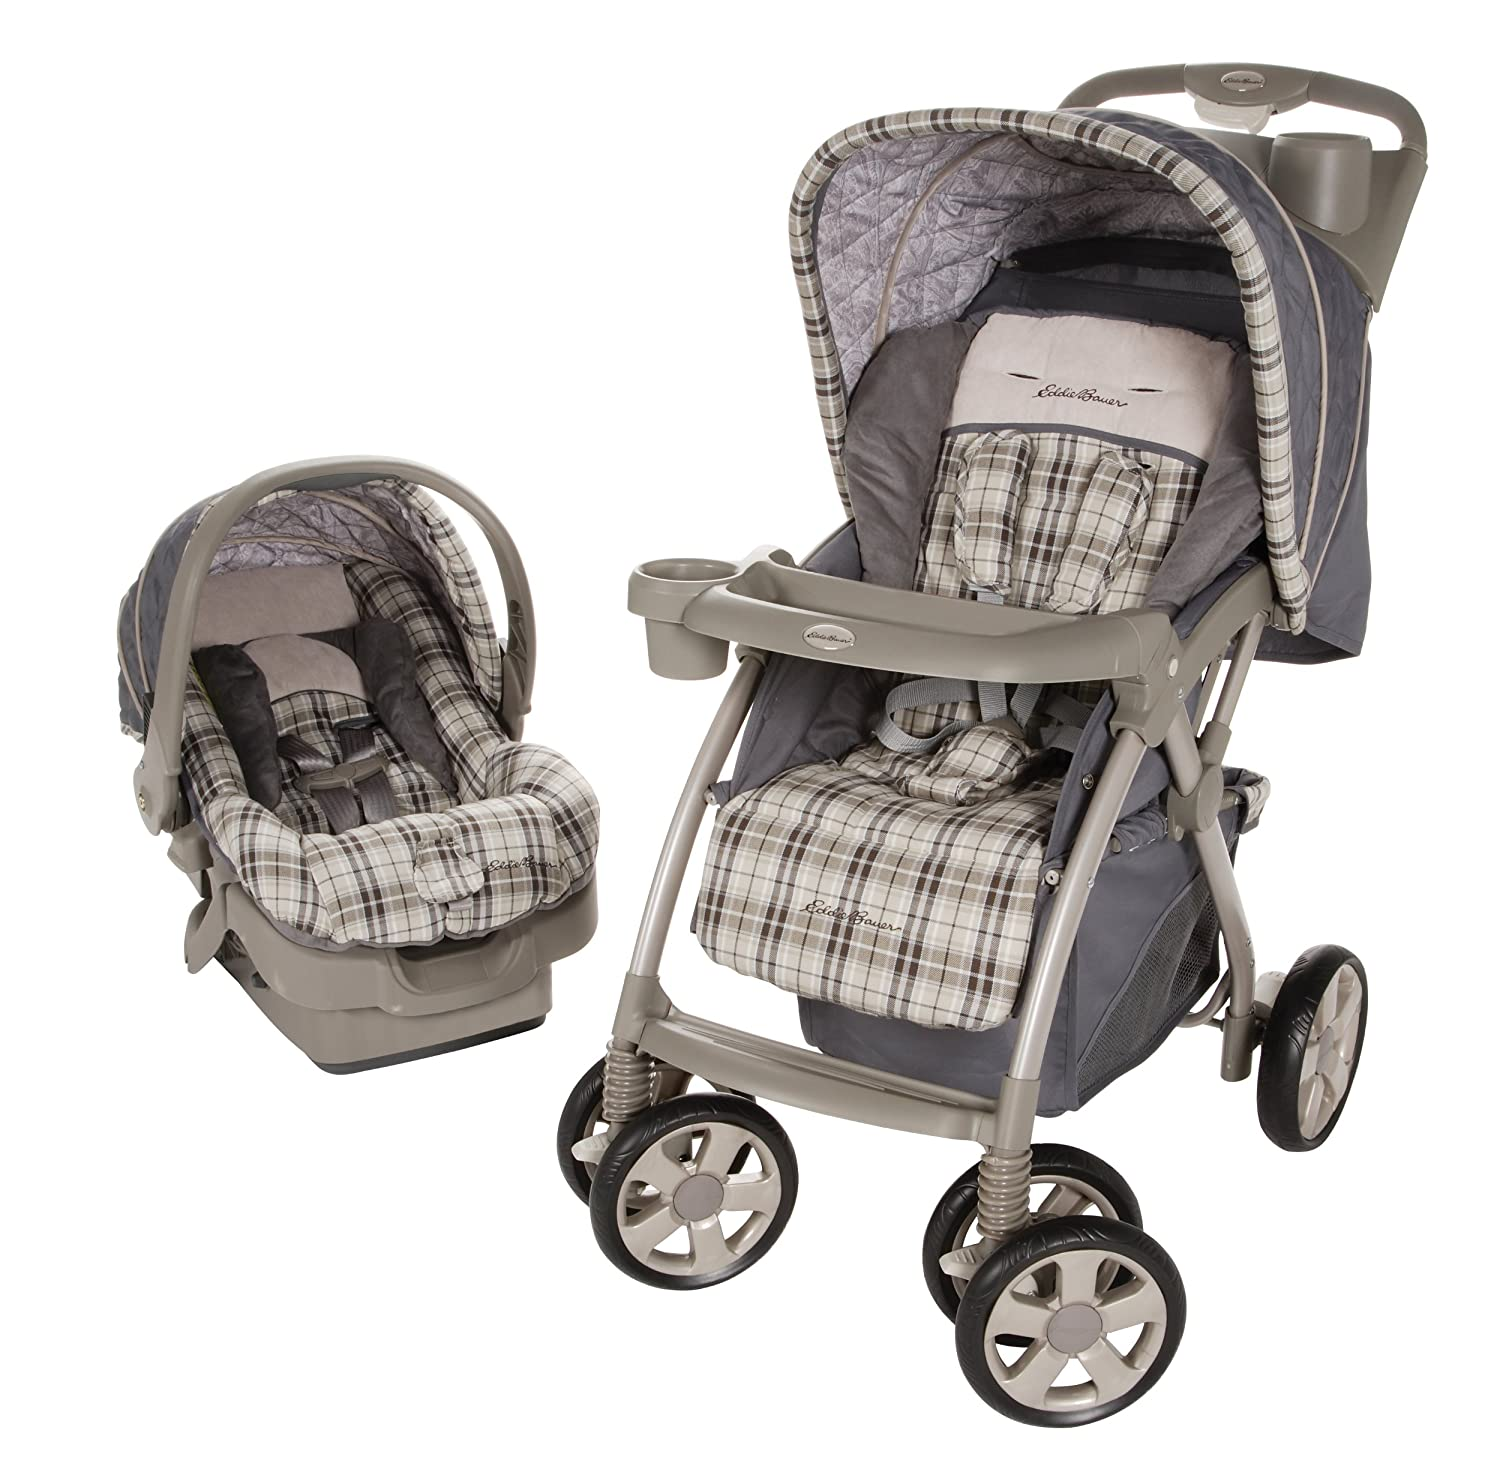 Amazon.com : Eddie Bauer Adventurer Travel System, Stonewood (Discontinued  by Manufacturer) : Infant Car Seat Stroller Travel Systems : Baby